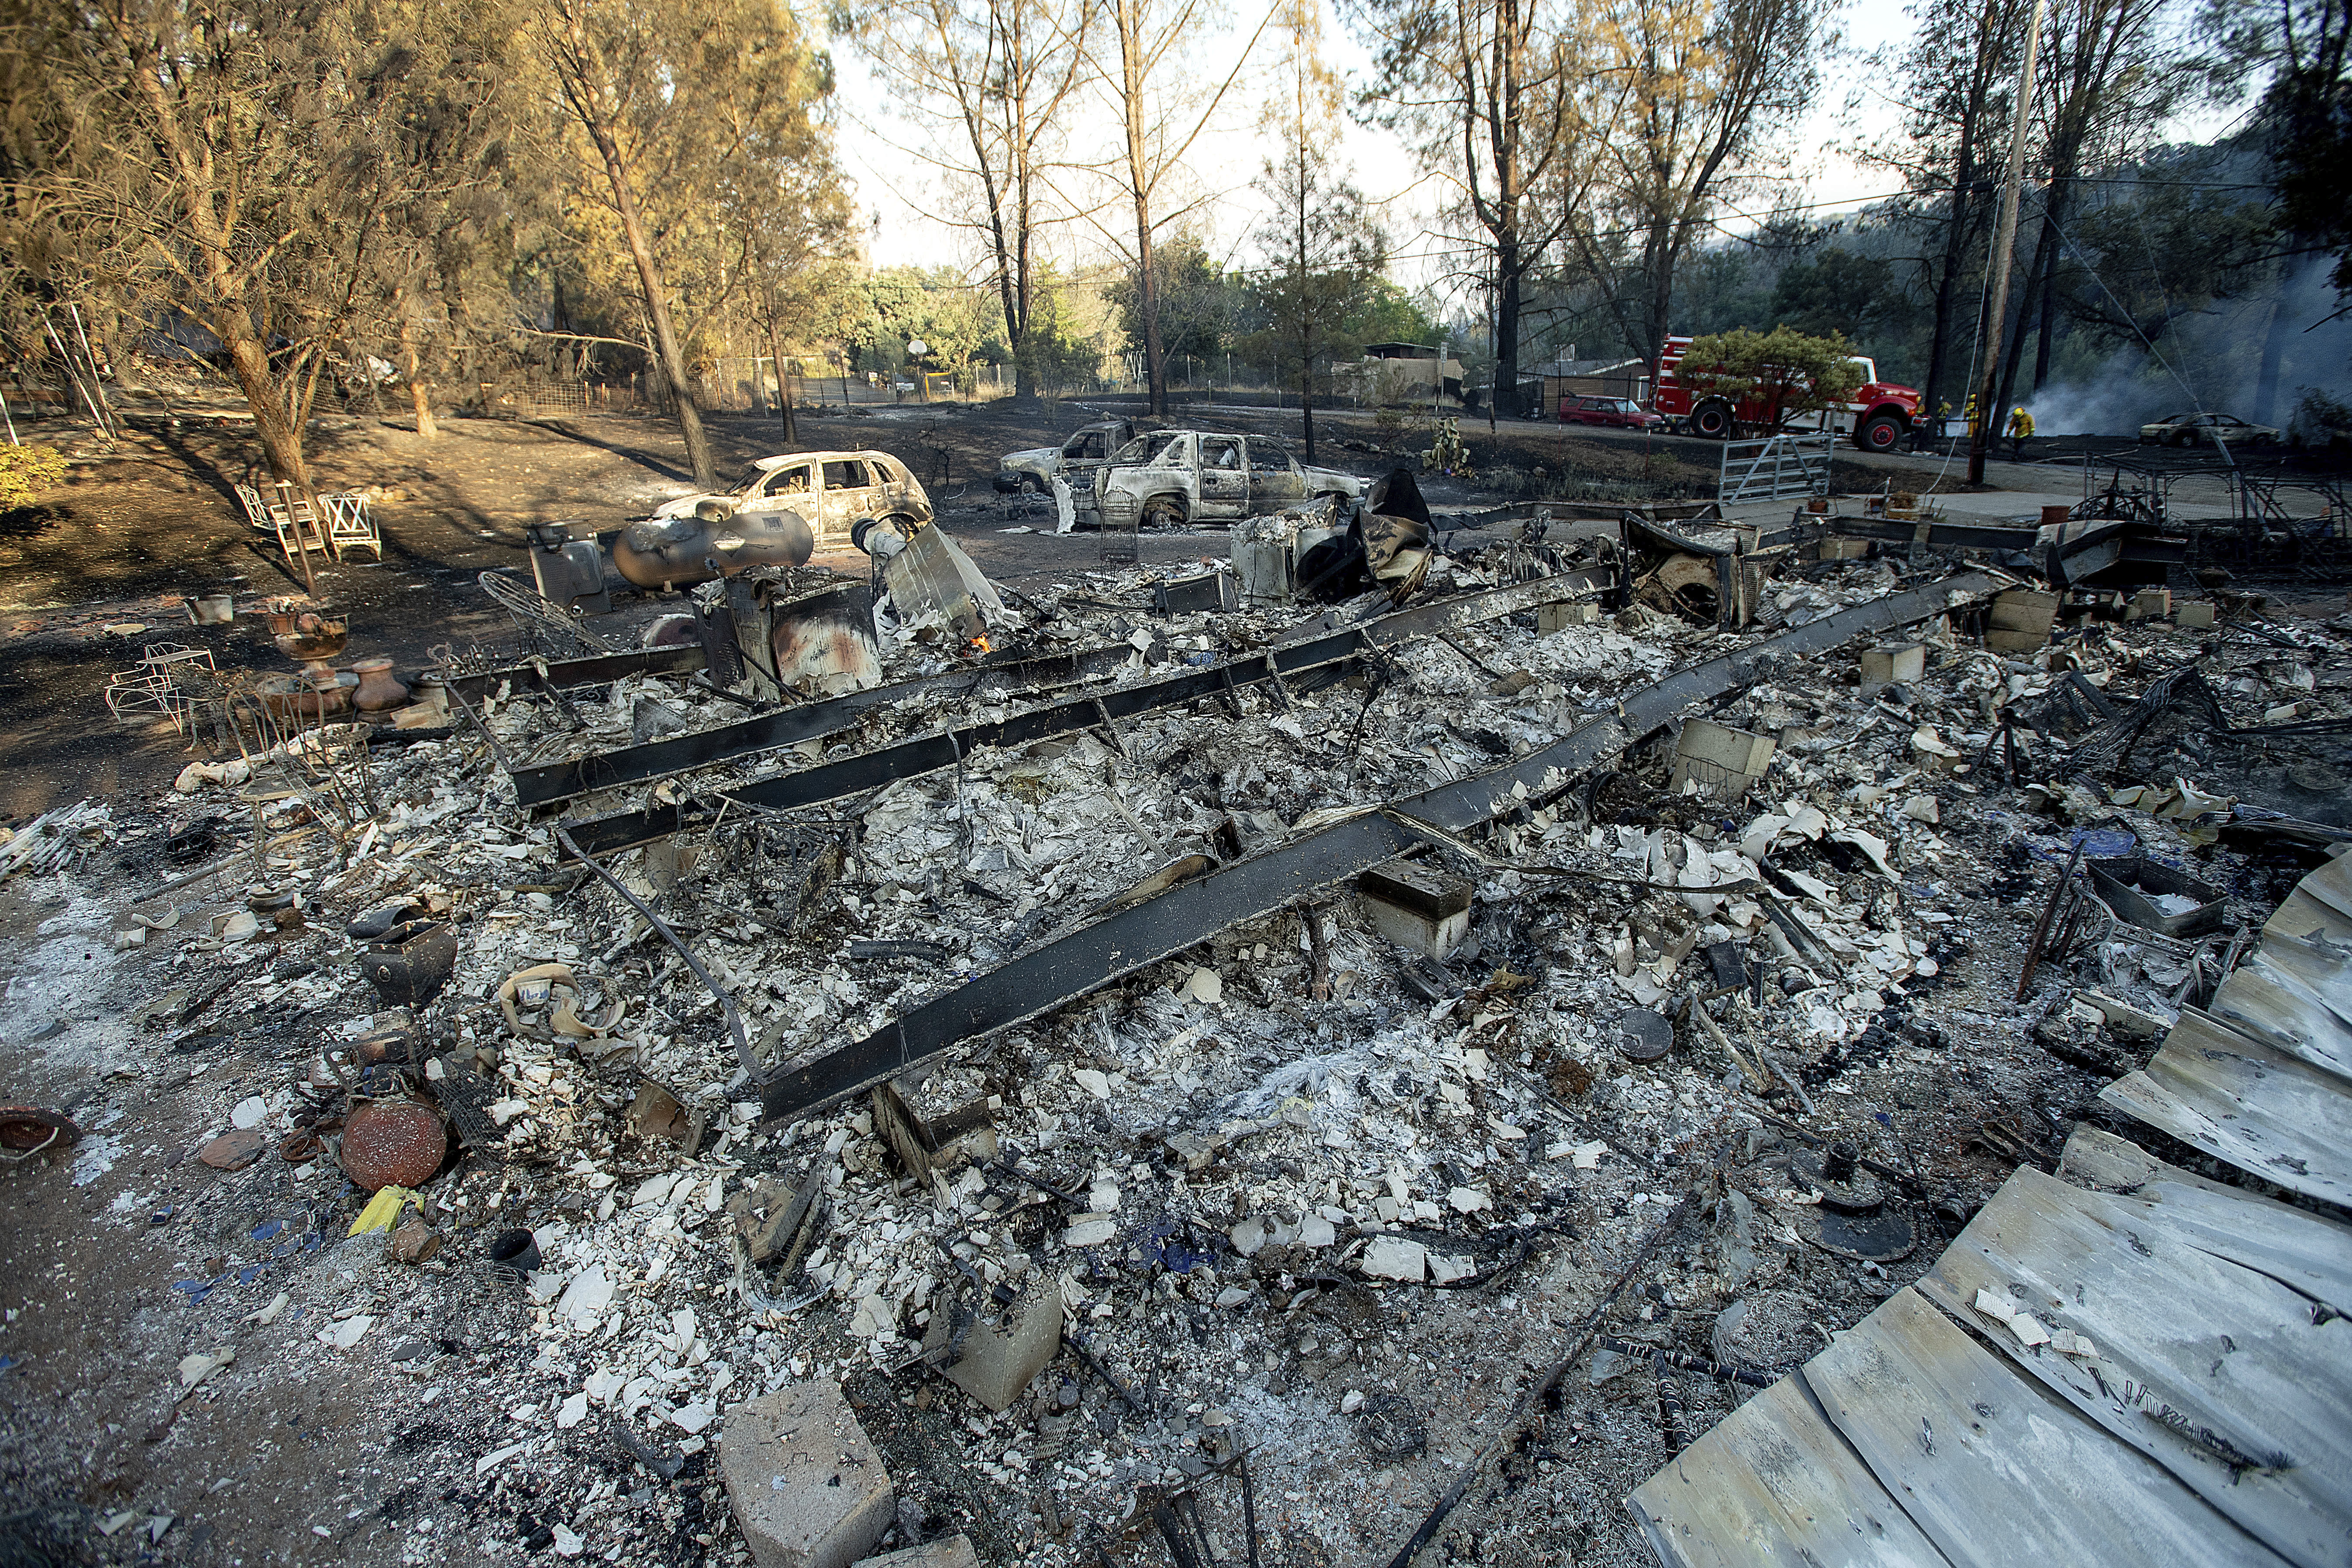 <p>A structure leveled by a wildfire rests in a clearing on Wolf Creek Road near Clearlake Oaks, Calif., on Sunday, June 24, 2018. Wind-driven wildfires destroyed buildings and threatened hundreds of others Sunday as they raced across dry brush in rural Northern California. (Photo: Noah Berger/AP) </p>